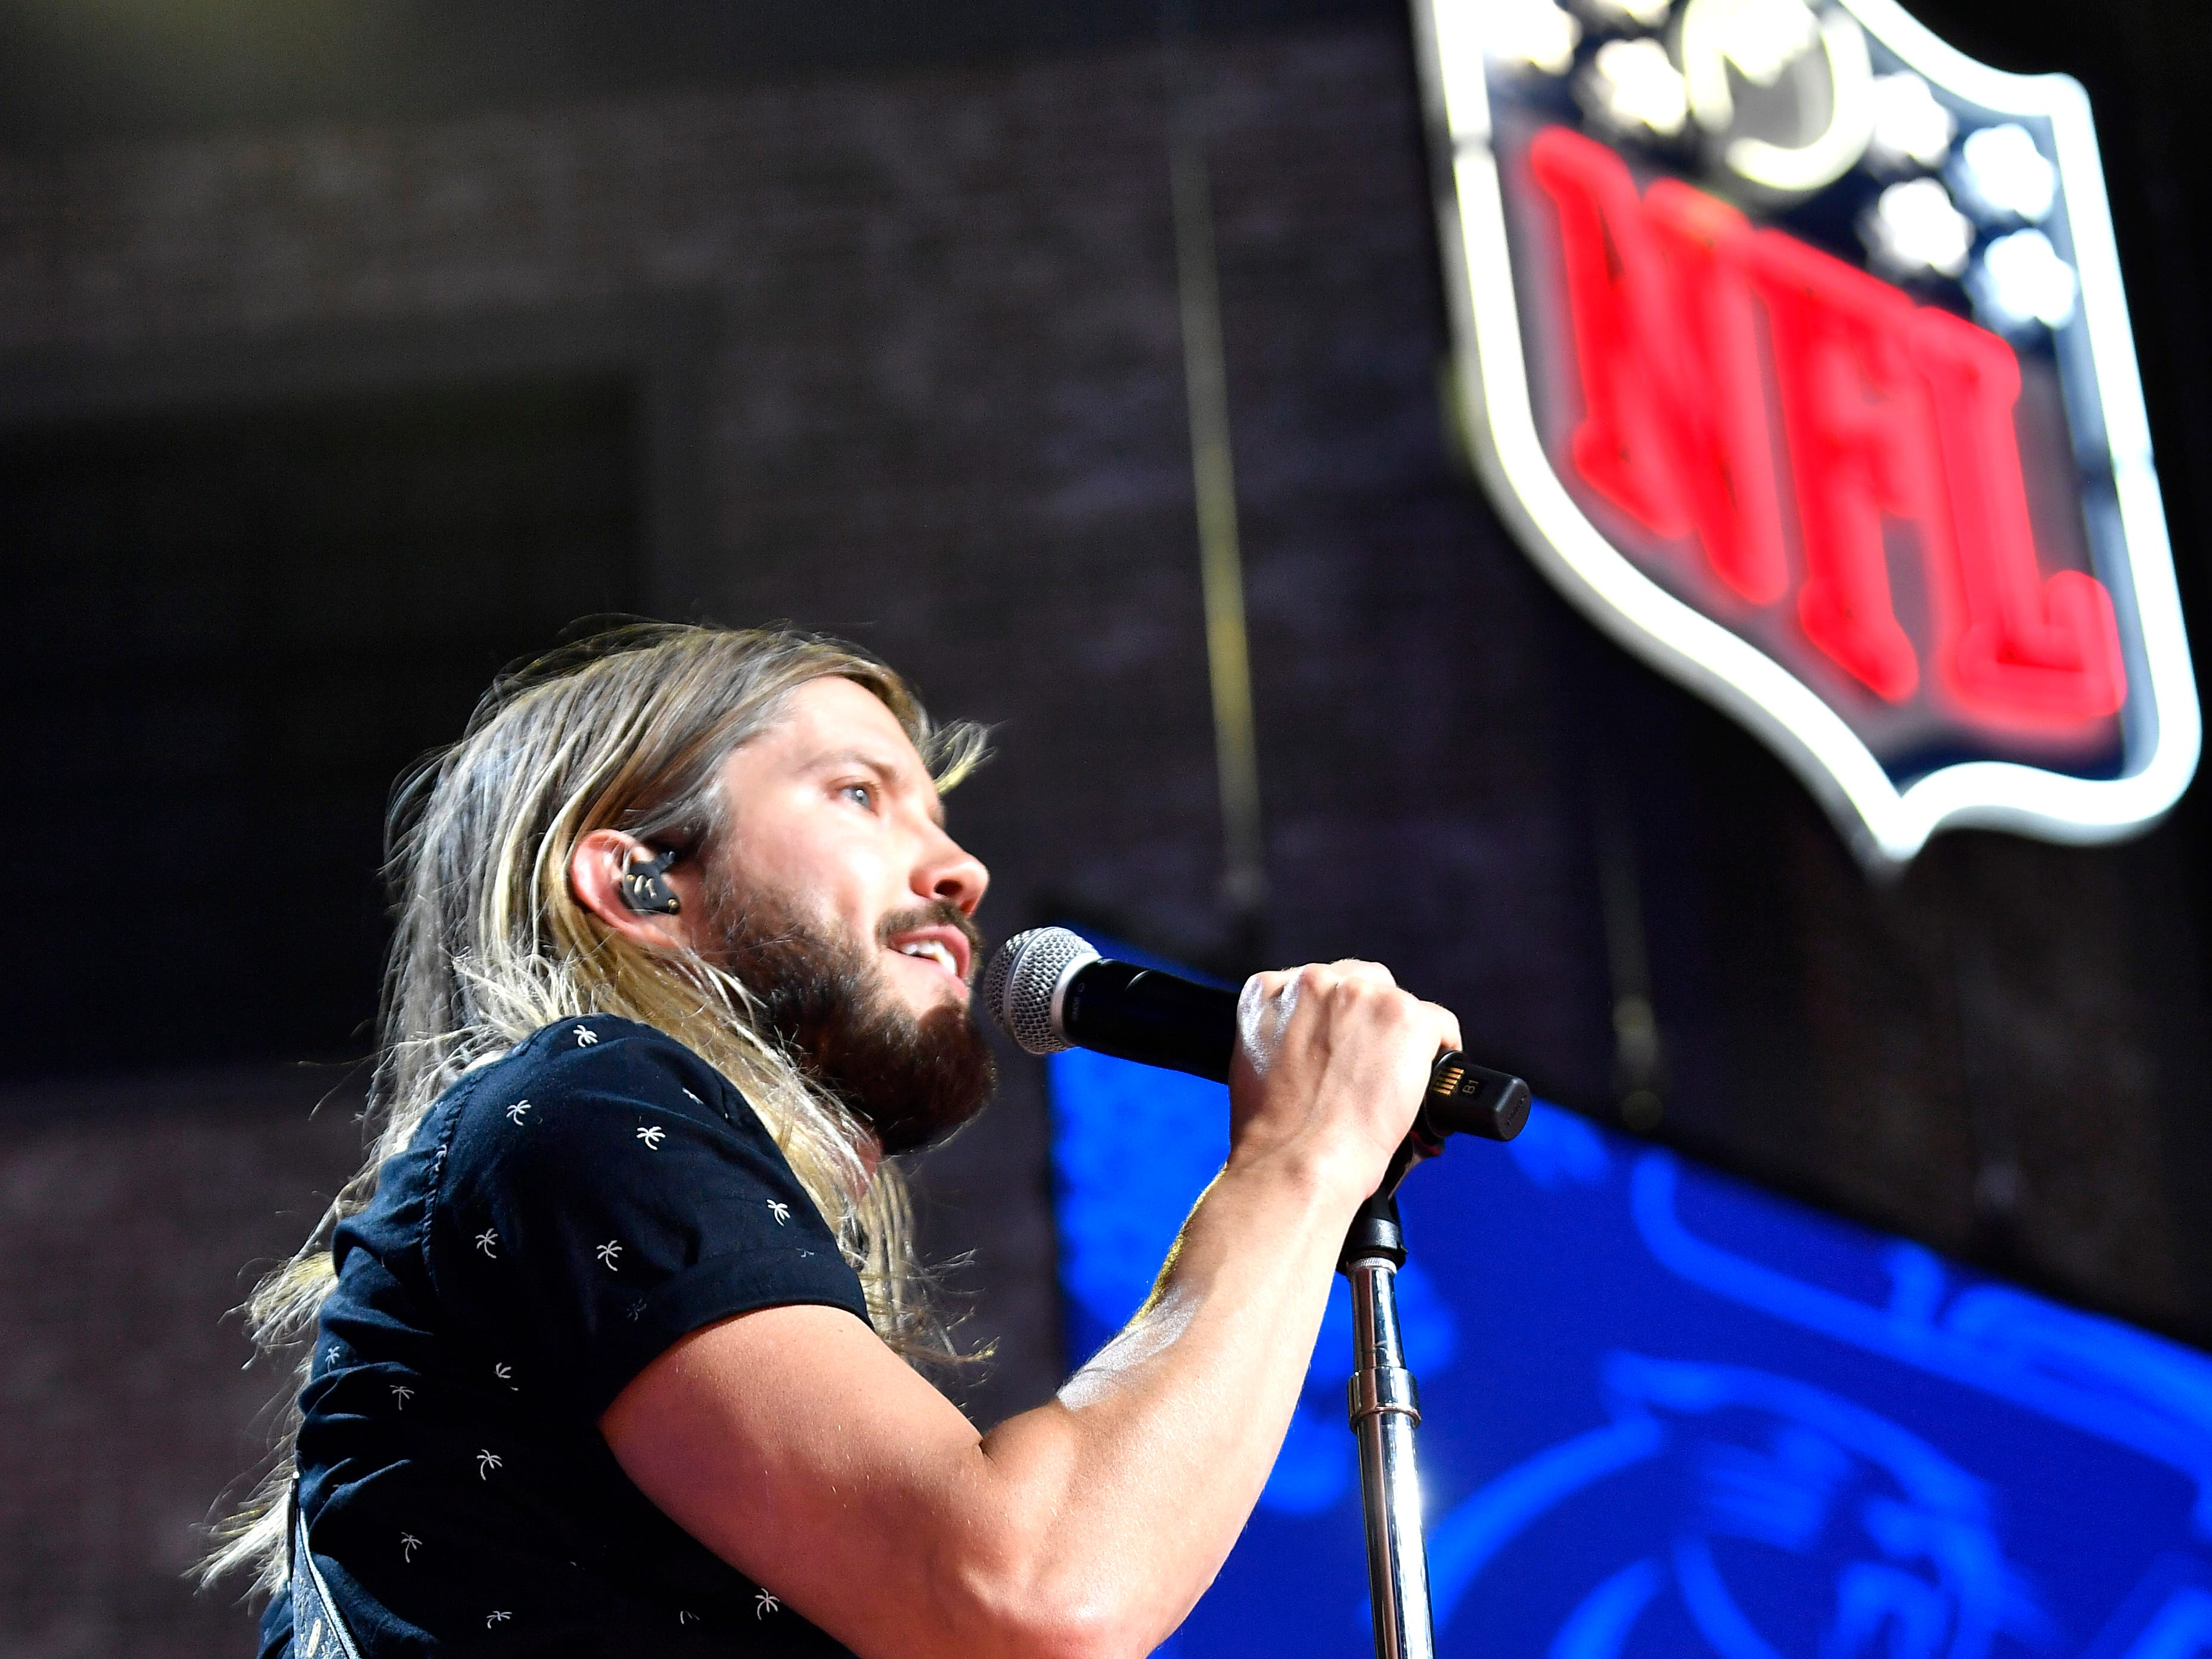 Moon Taxi performs on the main stage before the start of the first round of the NFL Draft Thursday, April 25, 2019, in Nashville, Tenn.